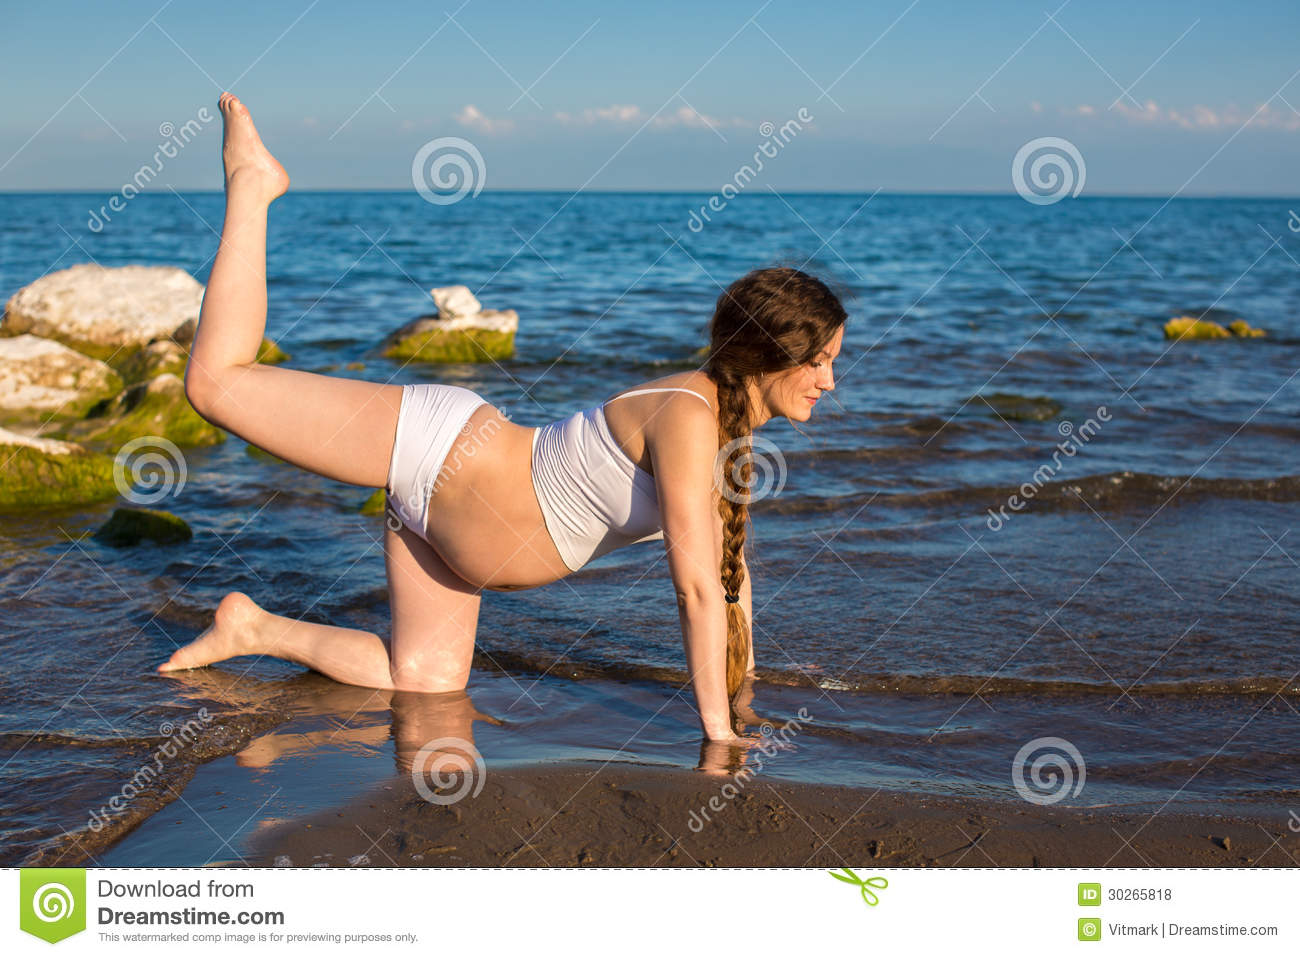 ed6864828f Pregnant woman in sports bra doing exercise in relaxation on yoga pose on  sea